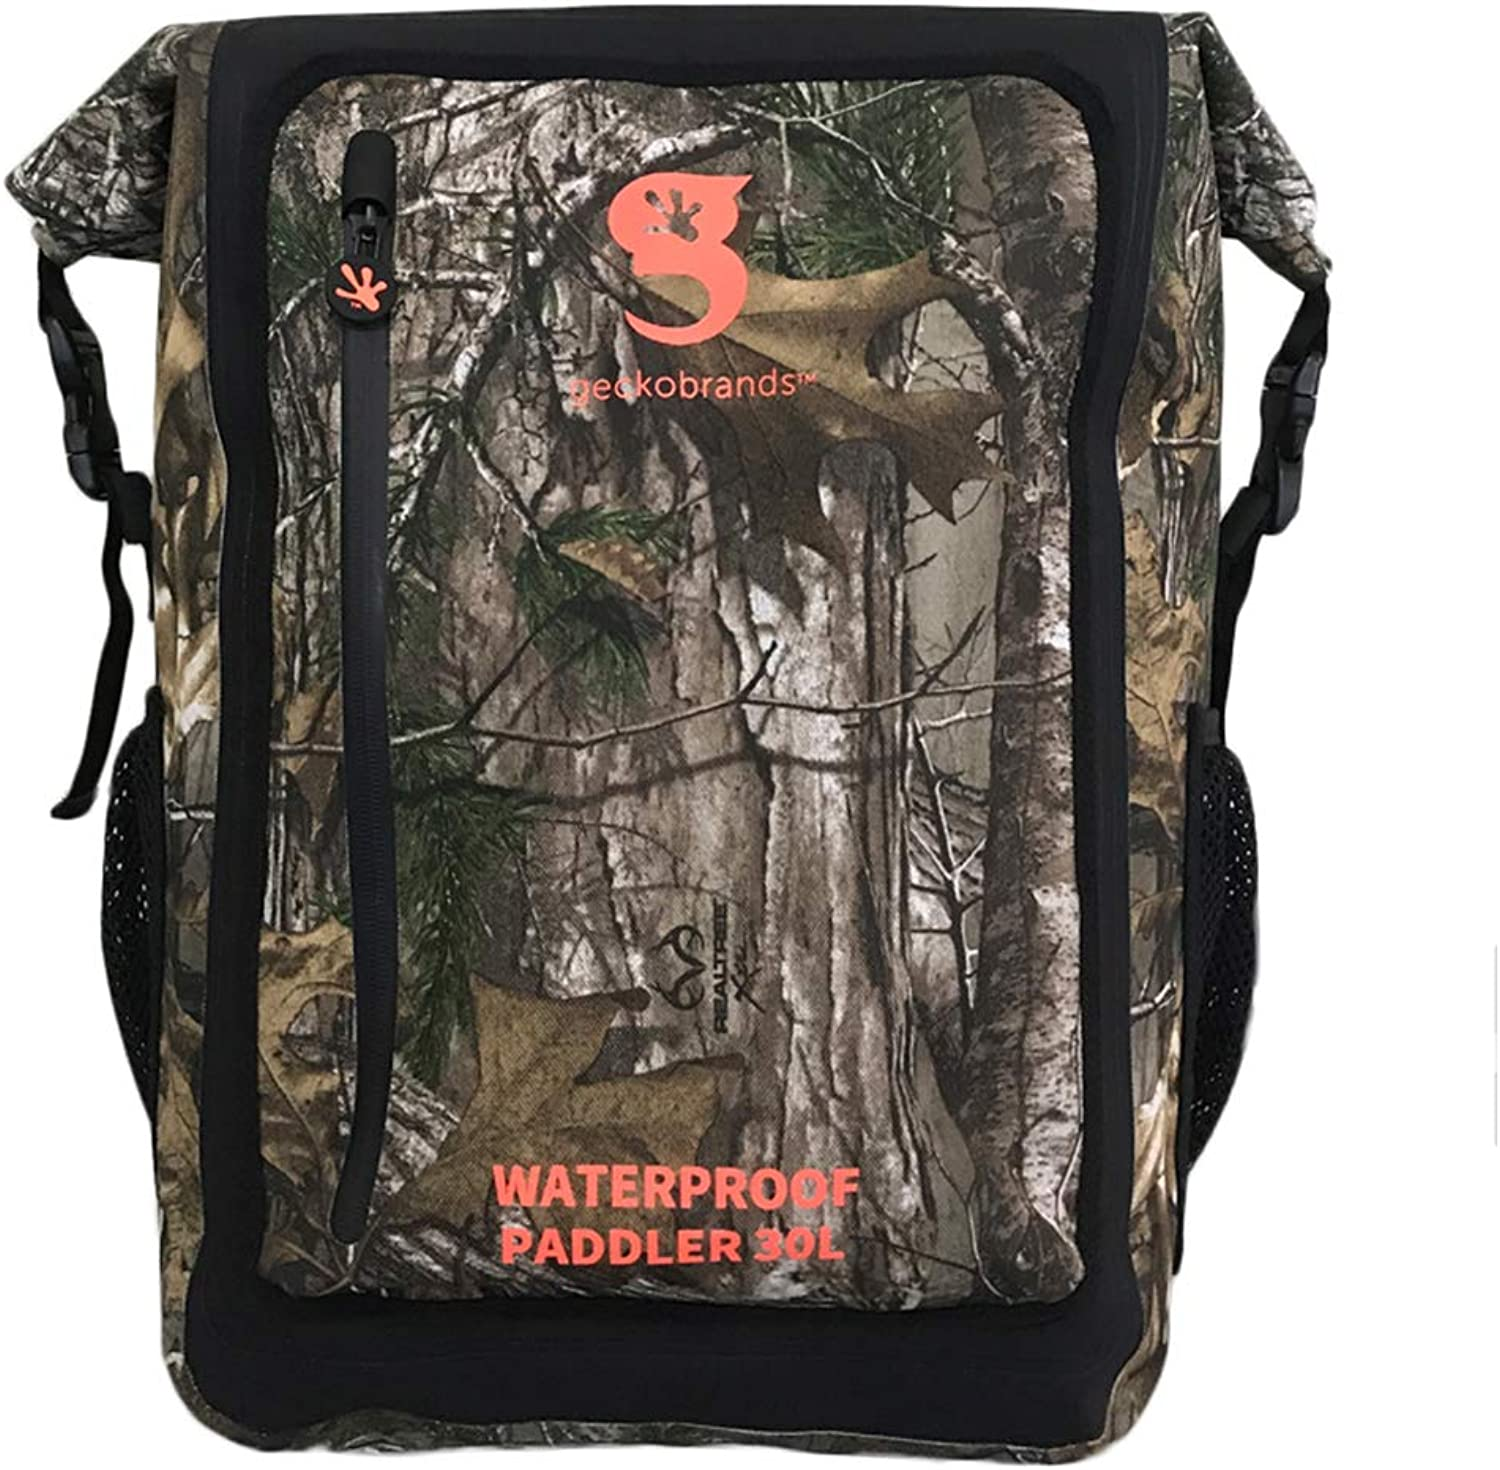 geckobrands Paddler 30L Waterproof Backpack, Available in 7 Colors